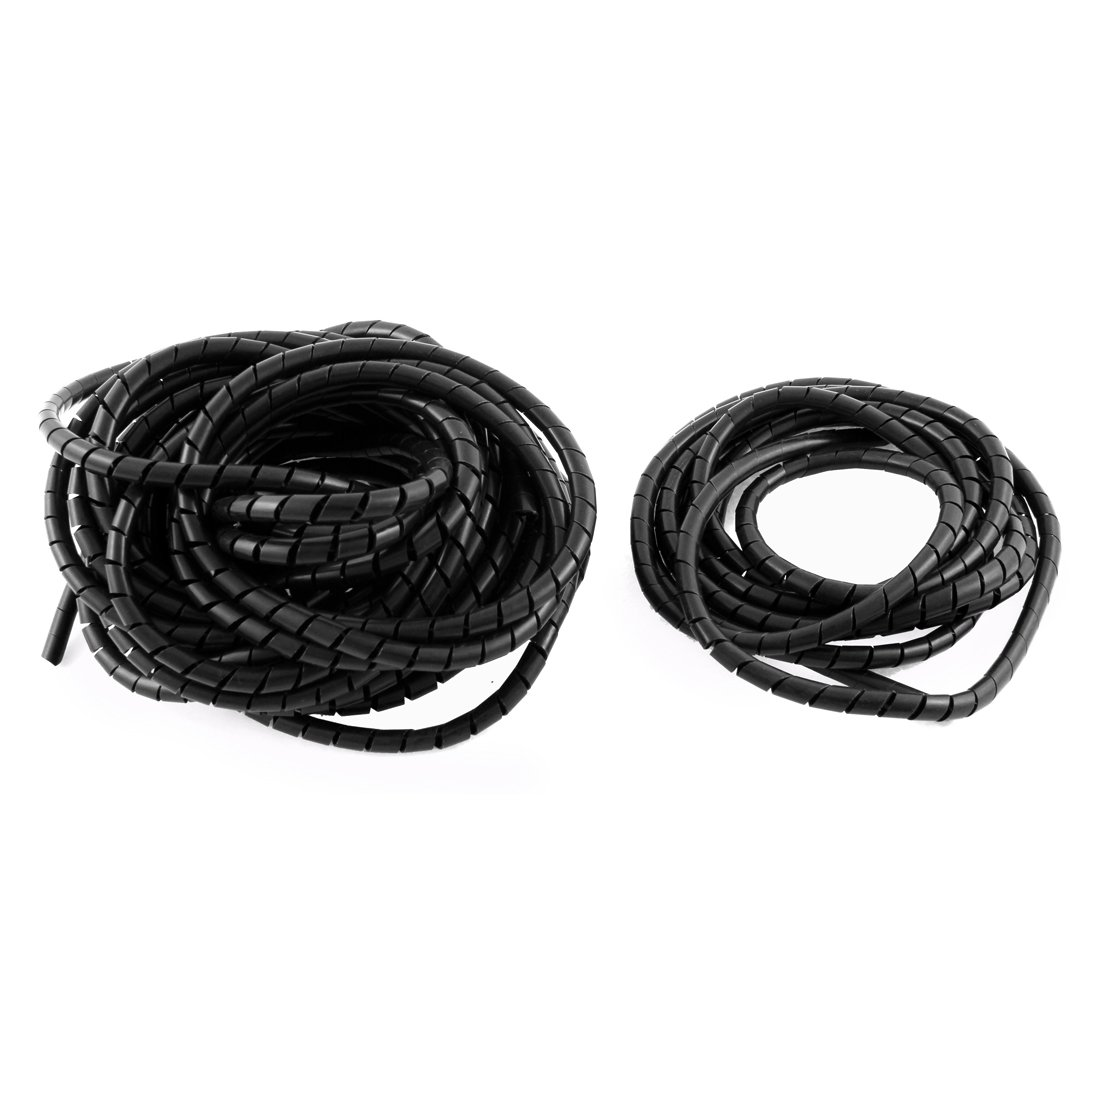 uxcell 10mm Flexible Spiral Tube Cable Wire Wrap Computer Manage Cord Black 10M Length